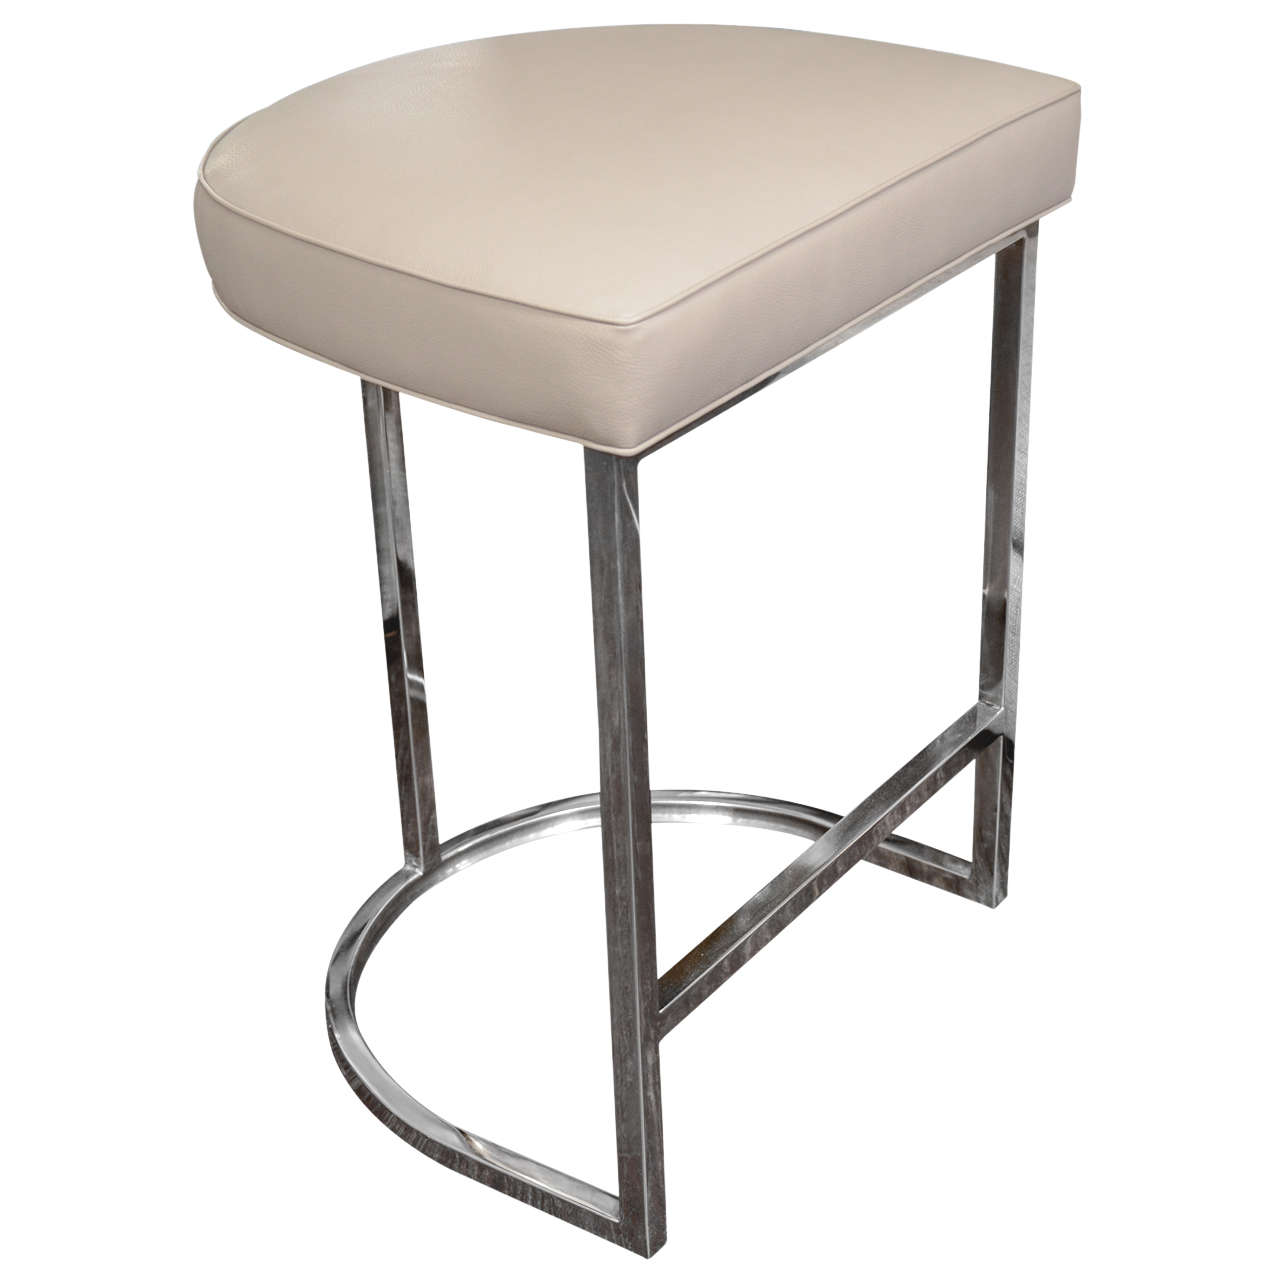 Single Bar Stool With Mirrored Stainless Steel Base At 1stdibs